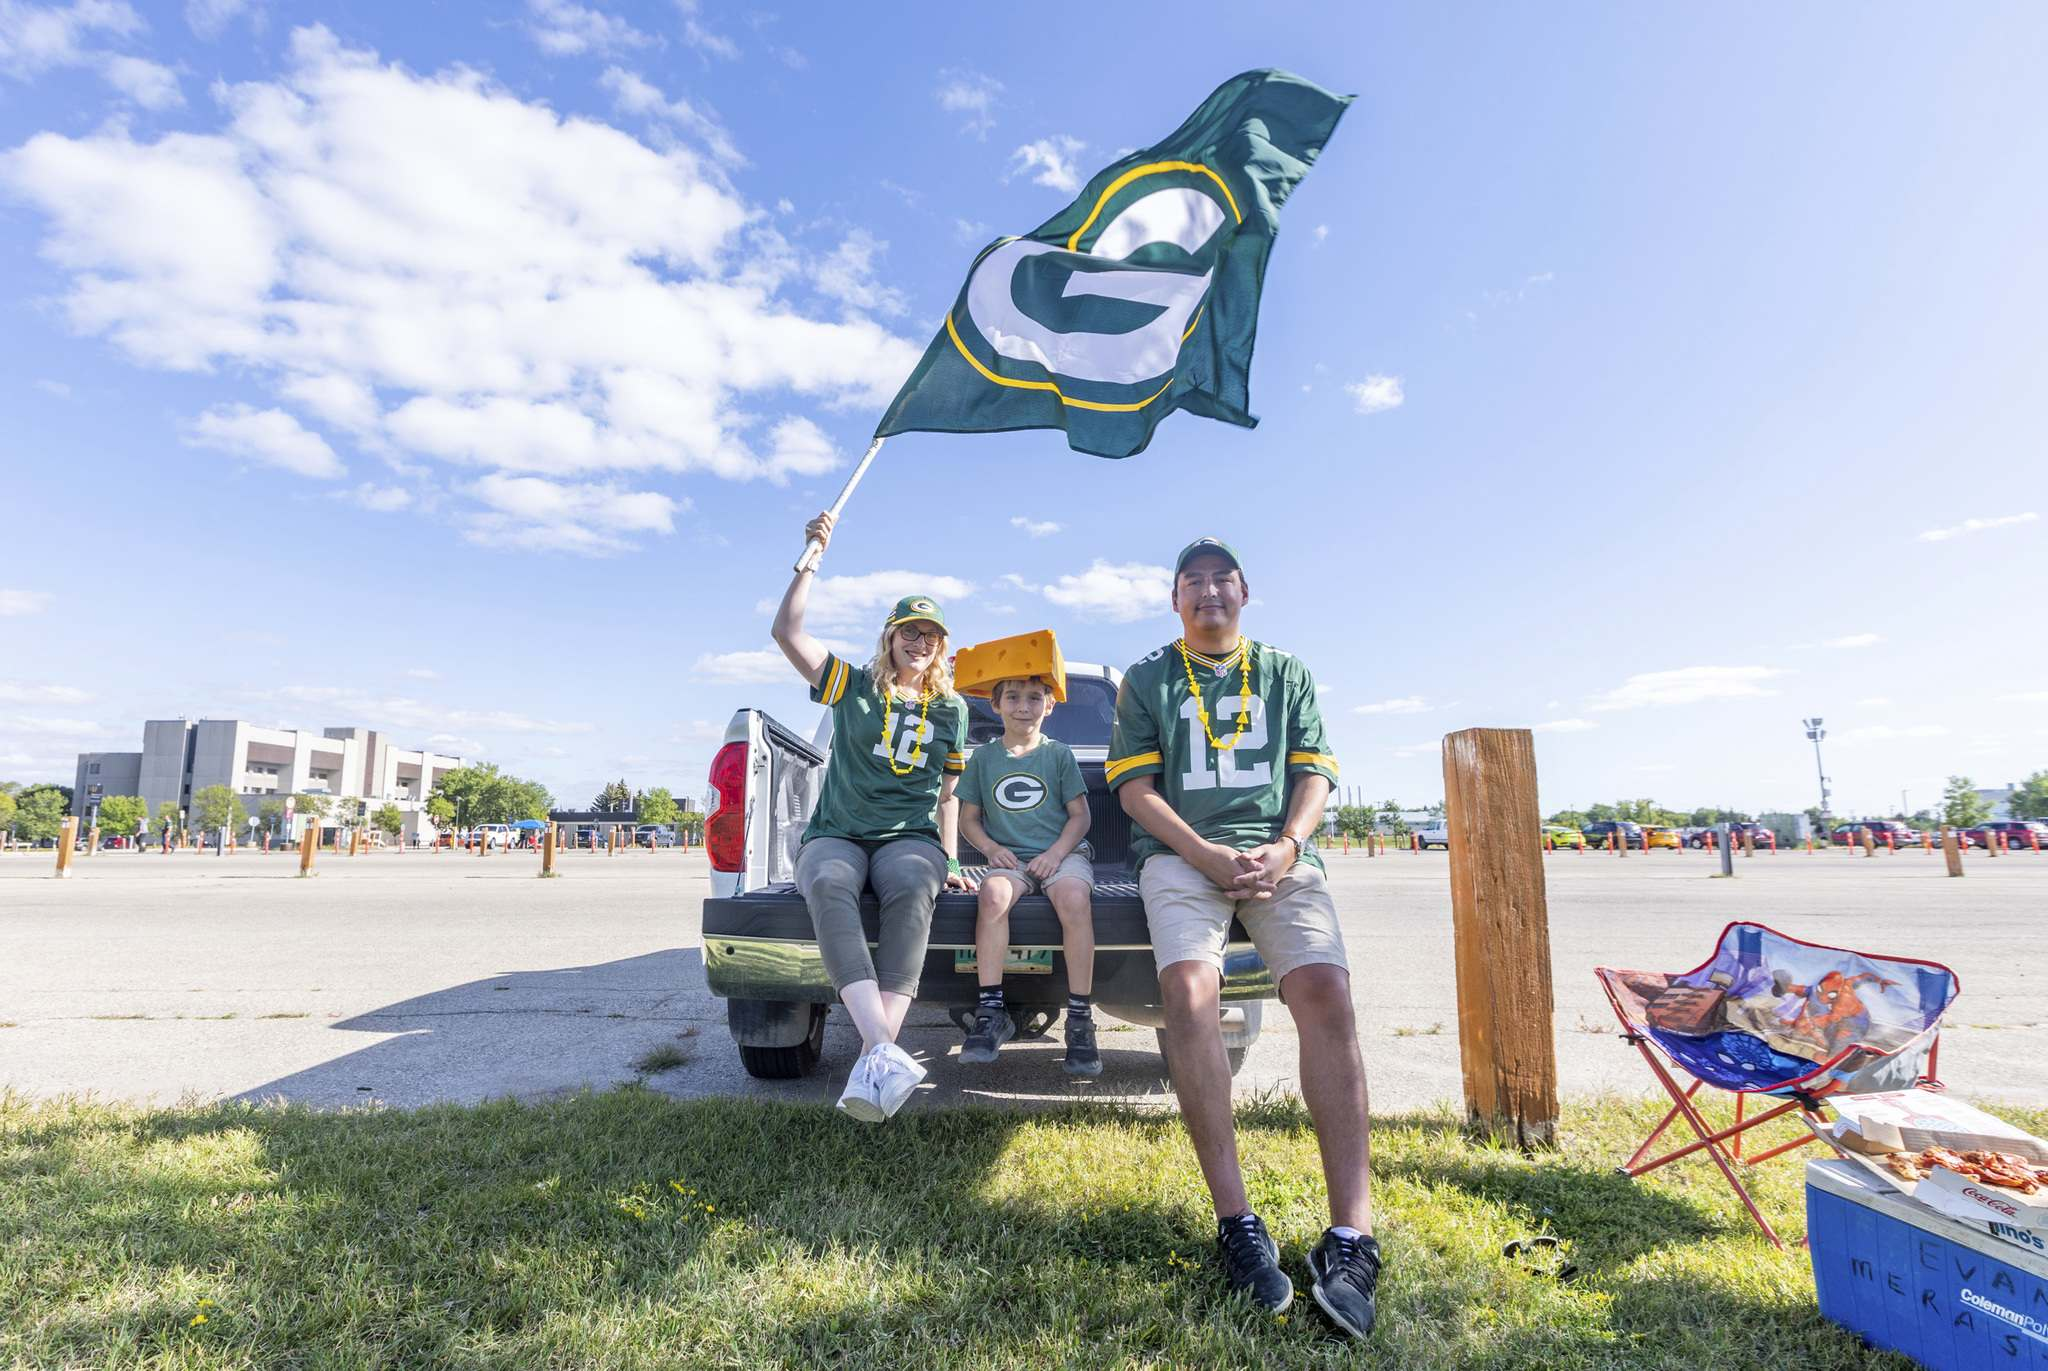 <p>Green Bay Packers die hard fans (from left) Randi, Burke (7) and Tommy Thomas have a parking lot to themselves to do some tailgating before the NFL pre-season game between the Green Bay Packers and Oakland Raiders at IG Field Thursday evening.</p>